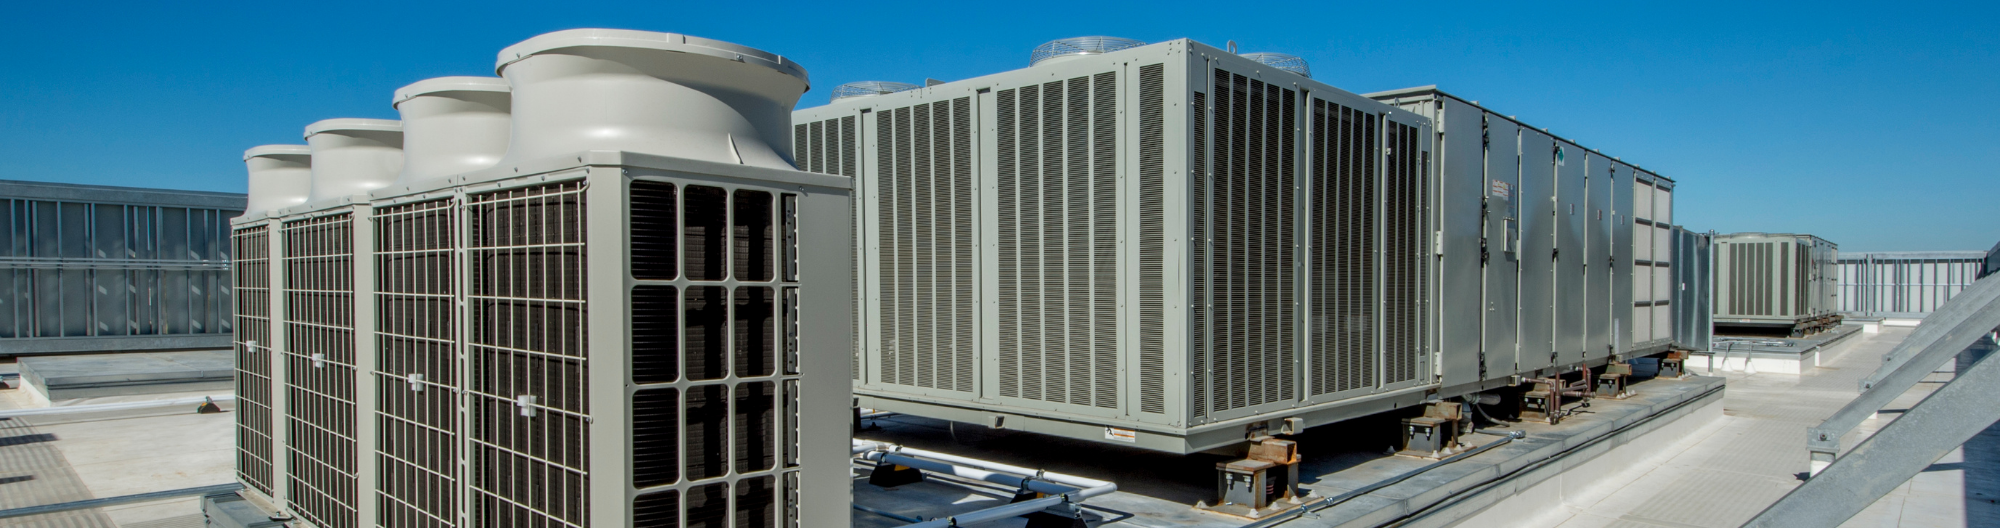 Large HVAC system on top of roof